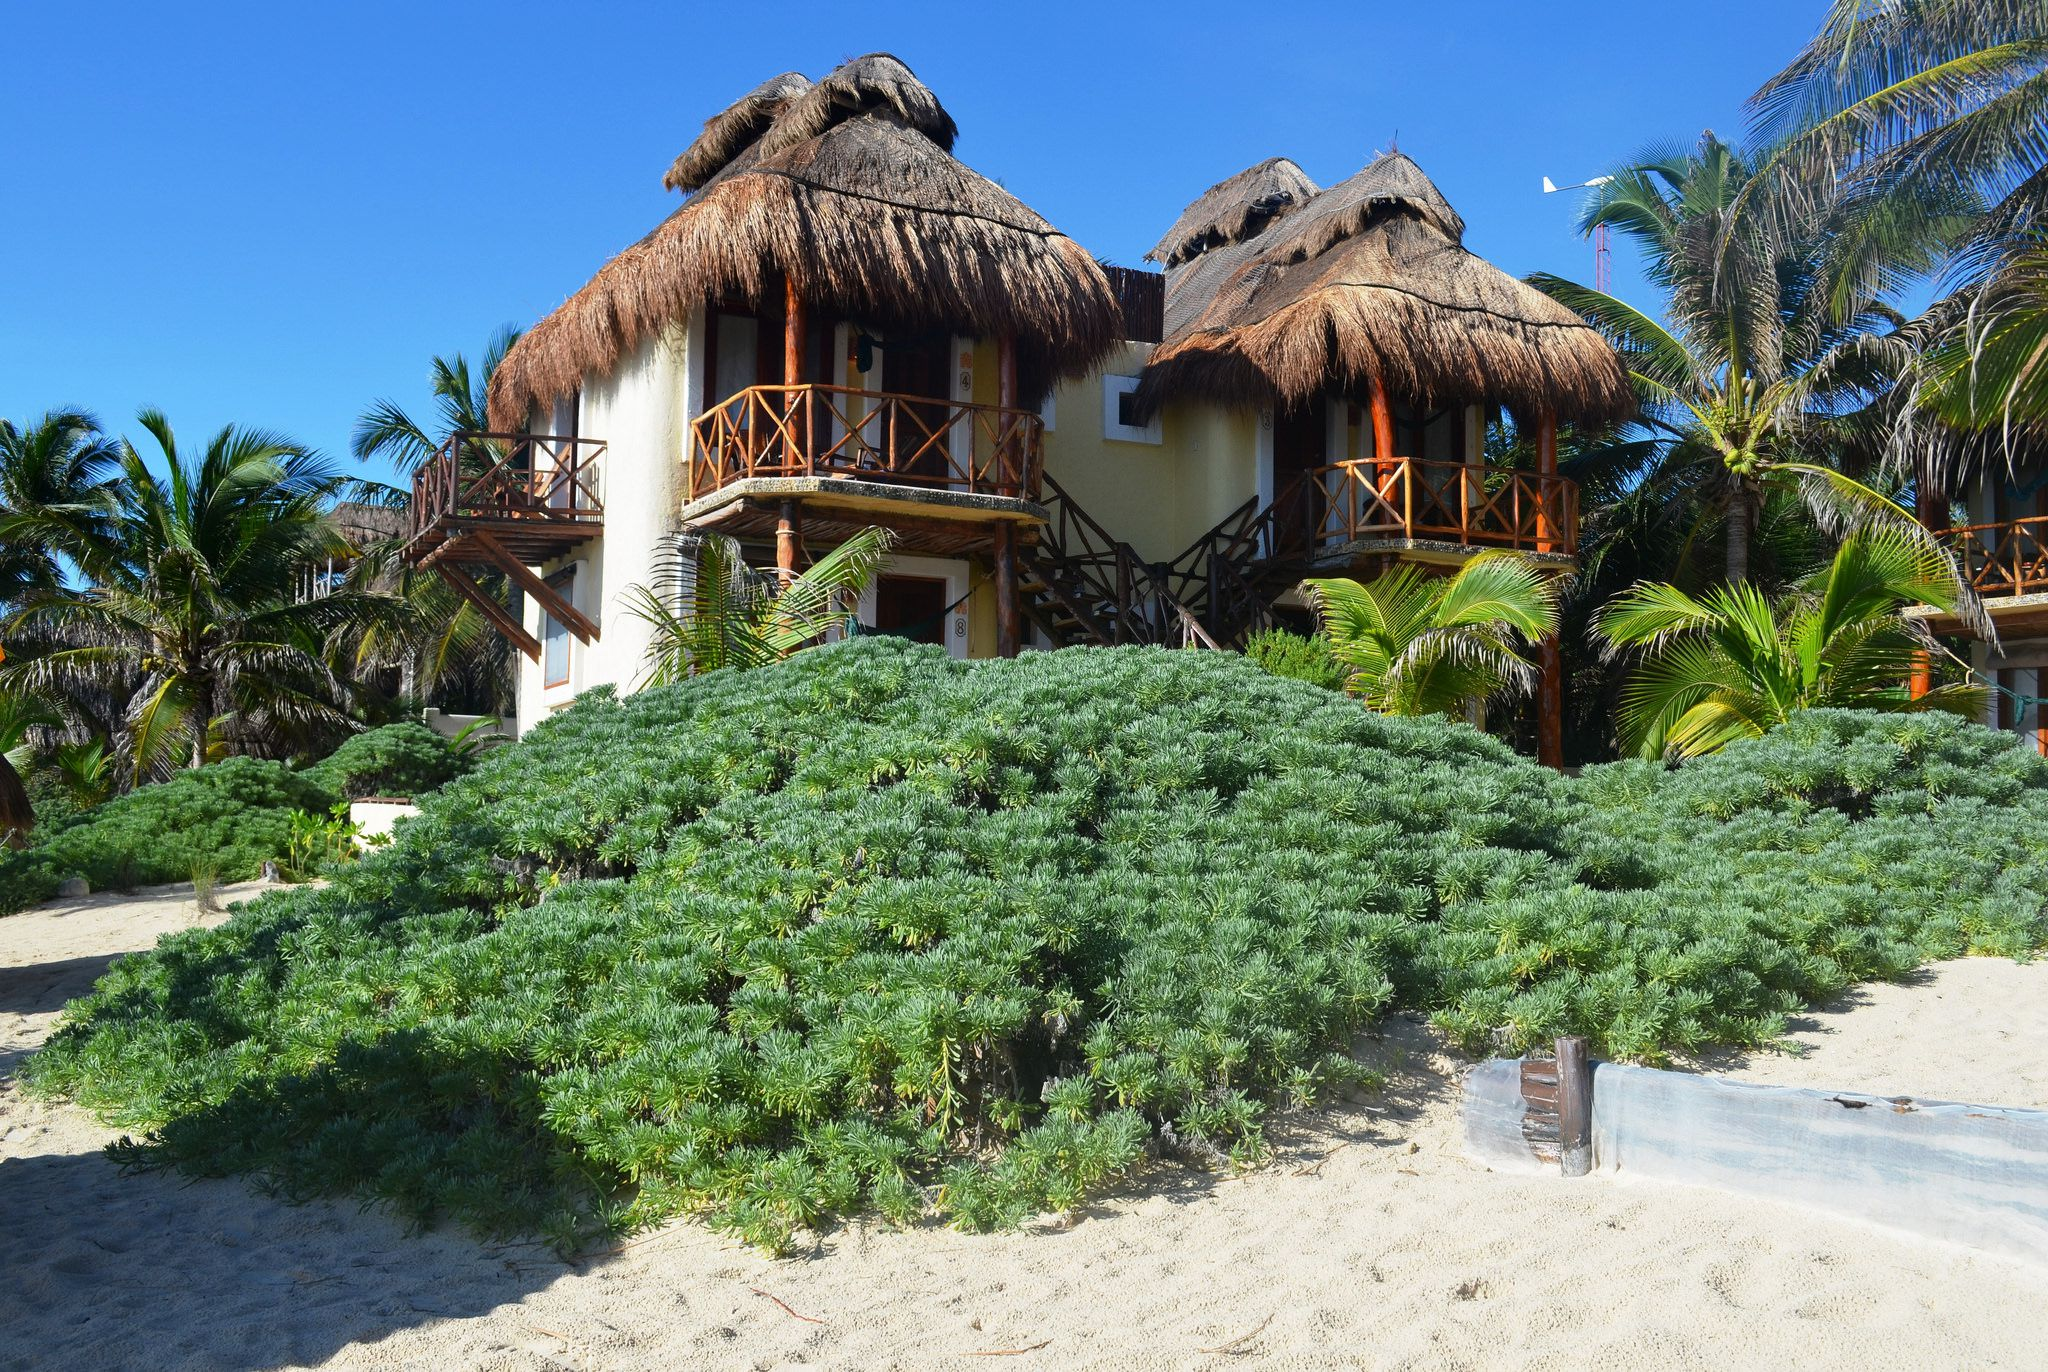 Cheap Hotels In Tulum